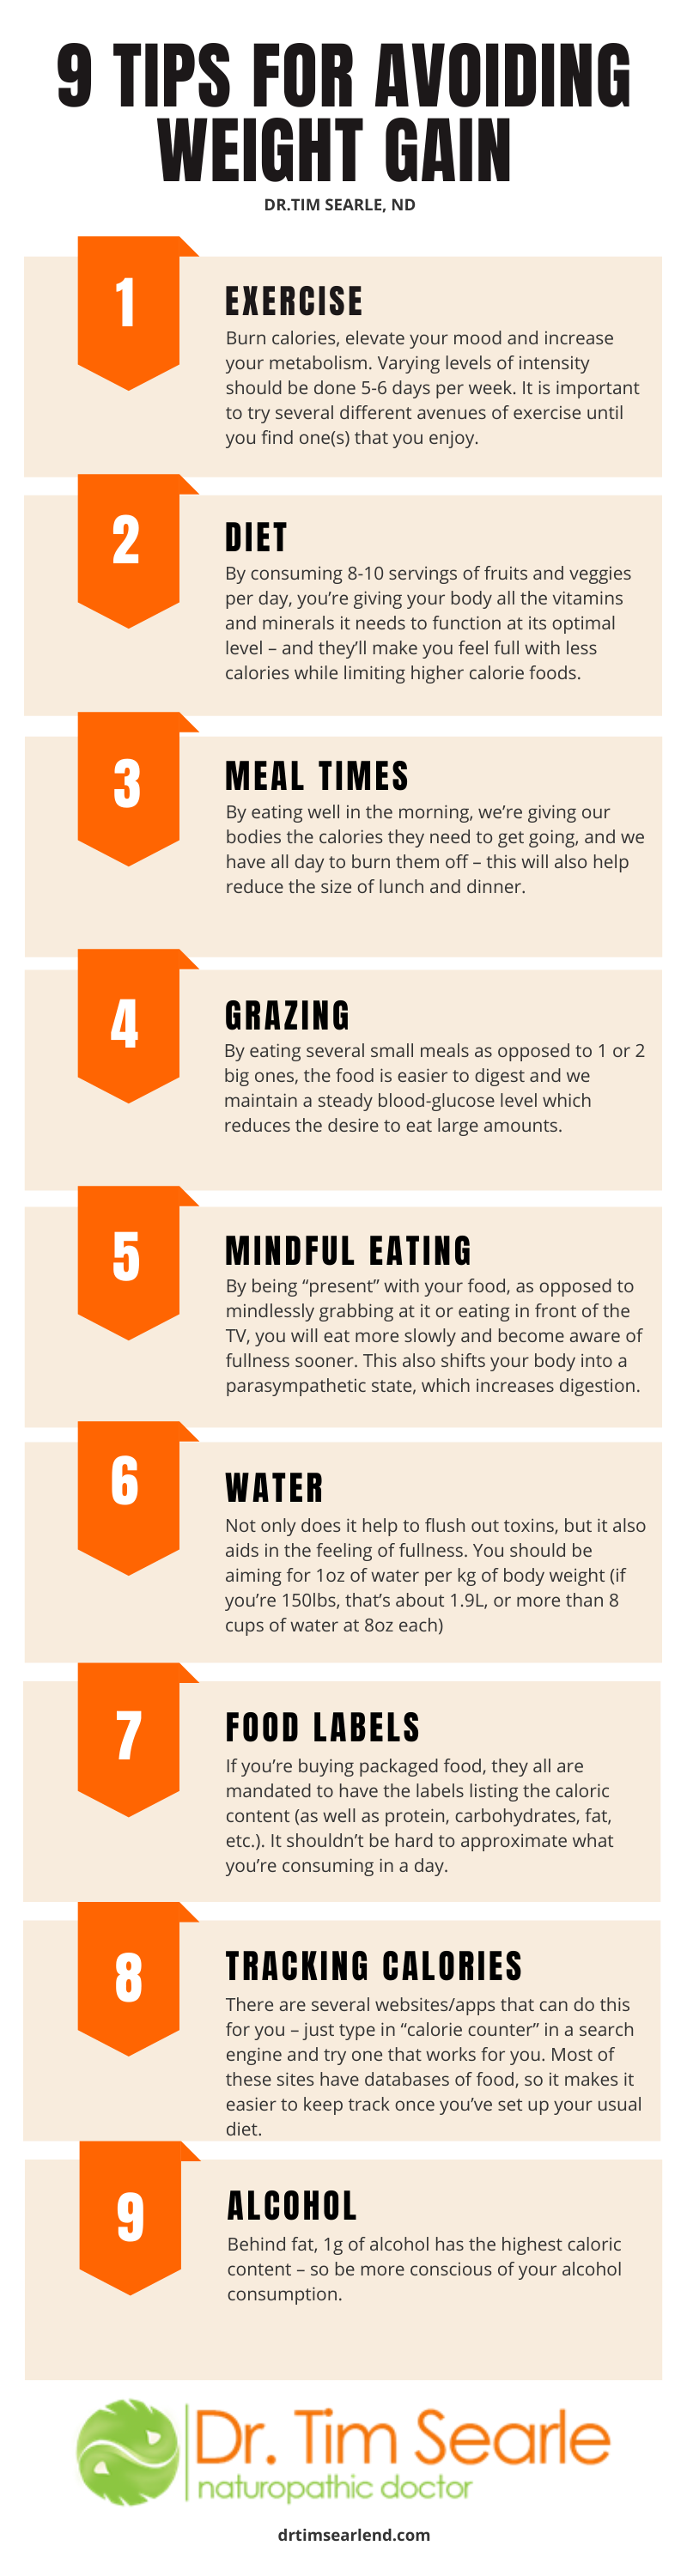 9 tips to avoid weight gain